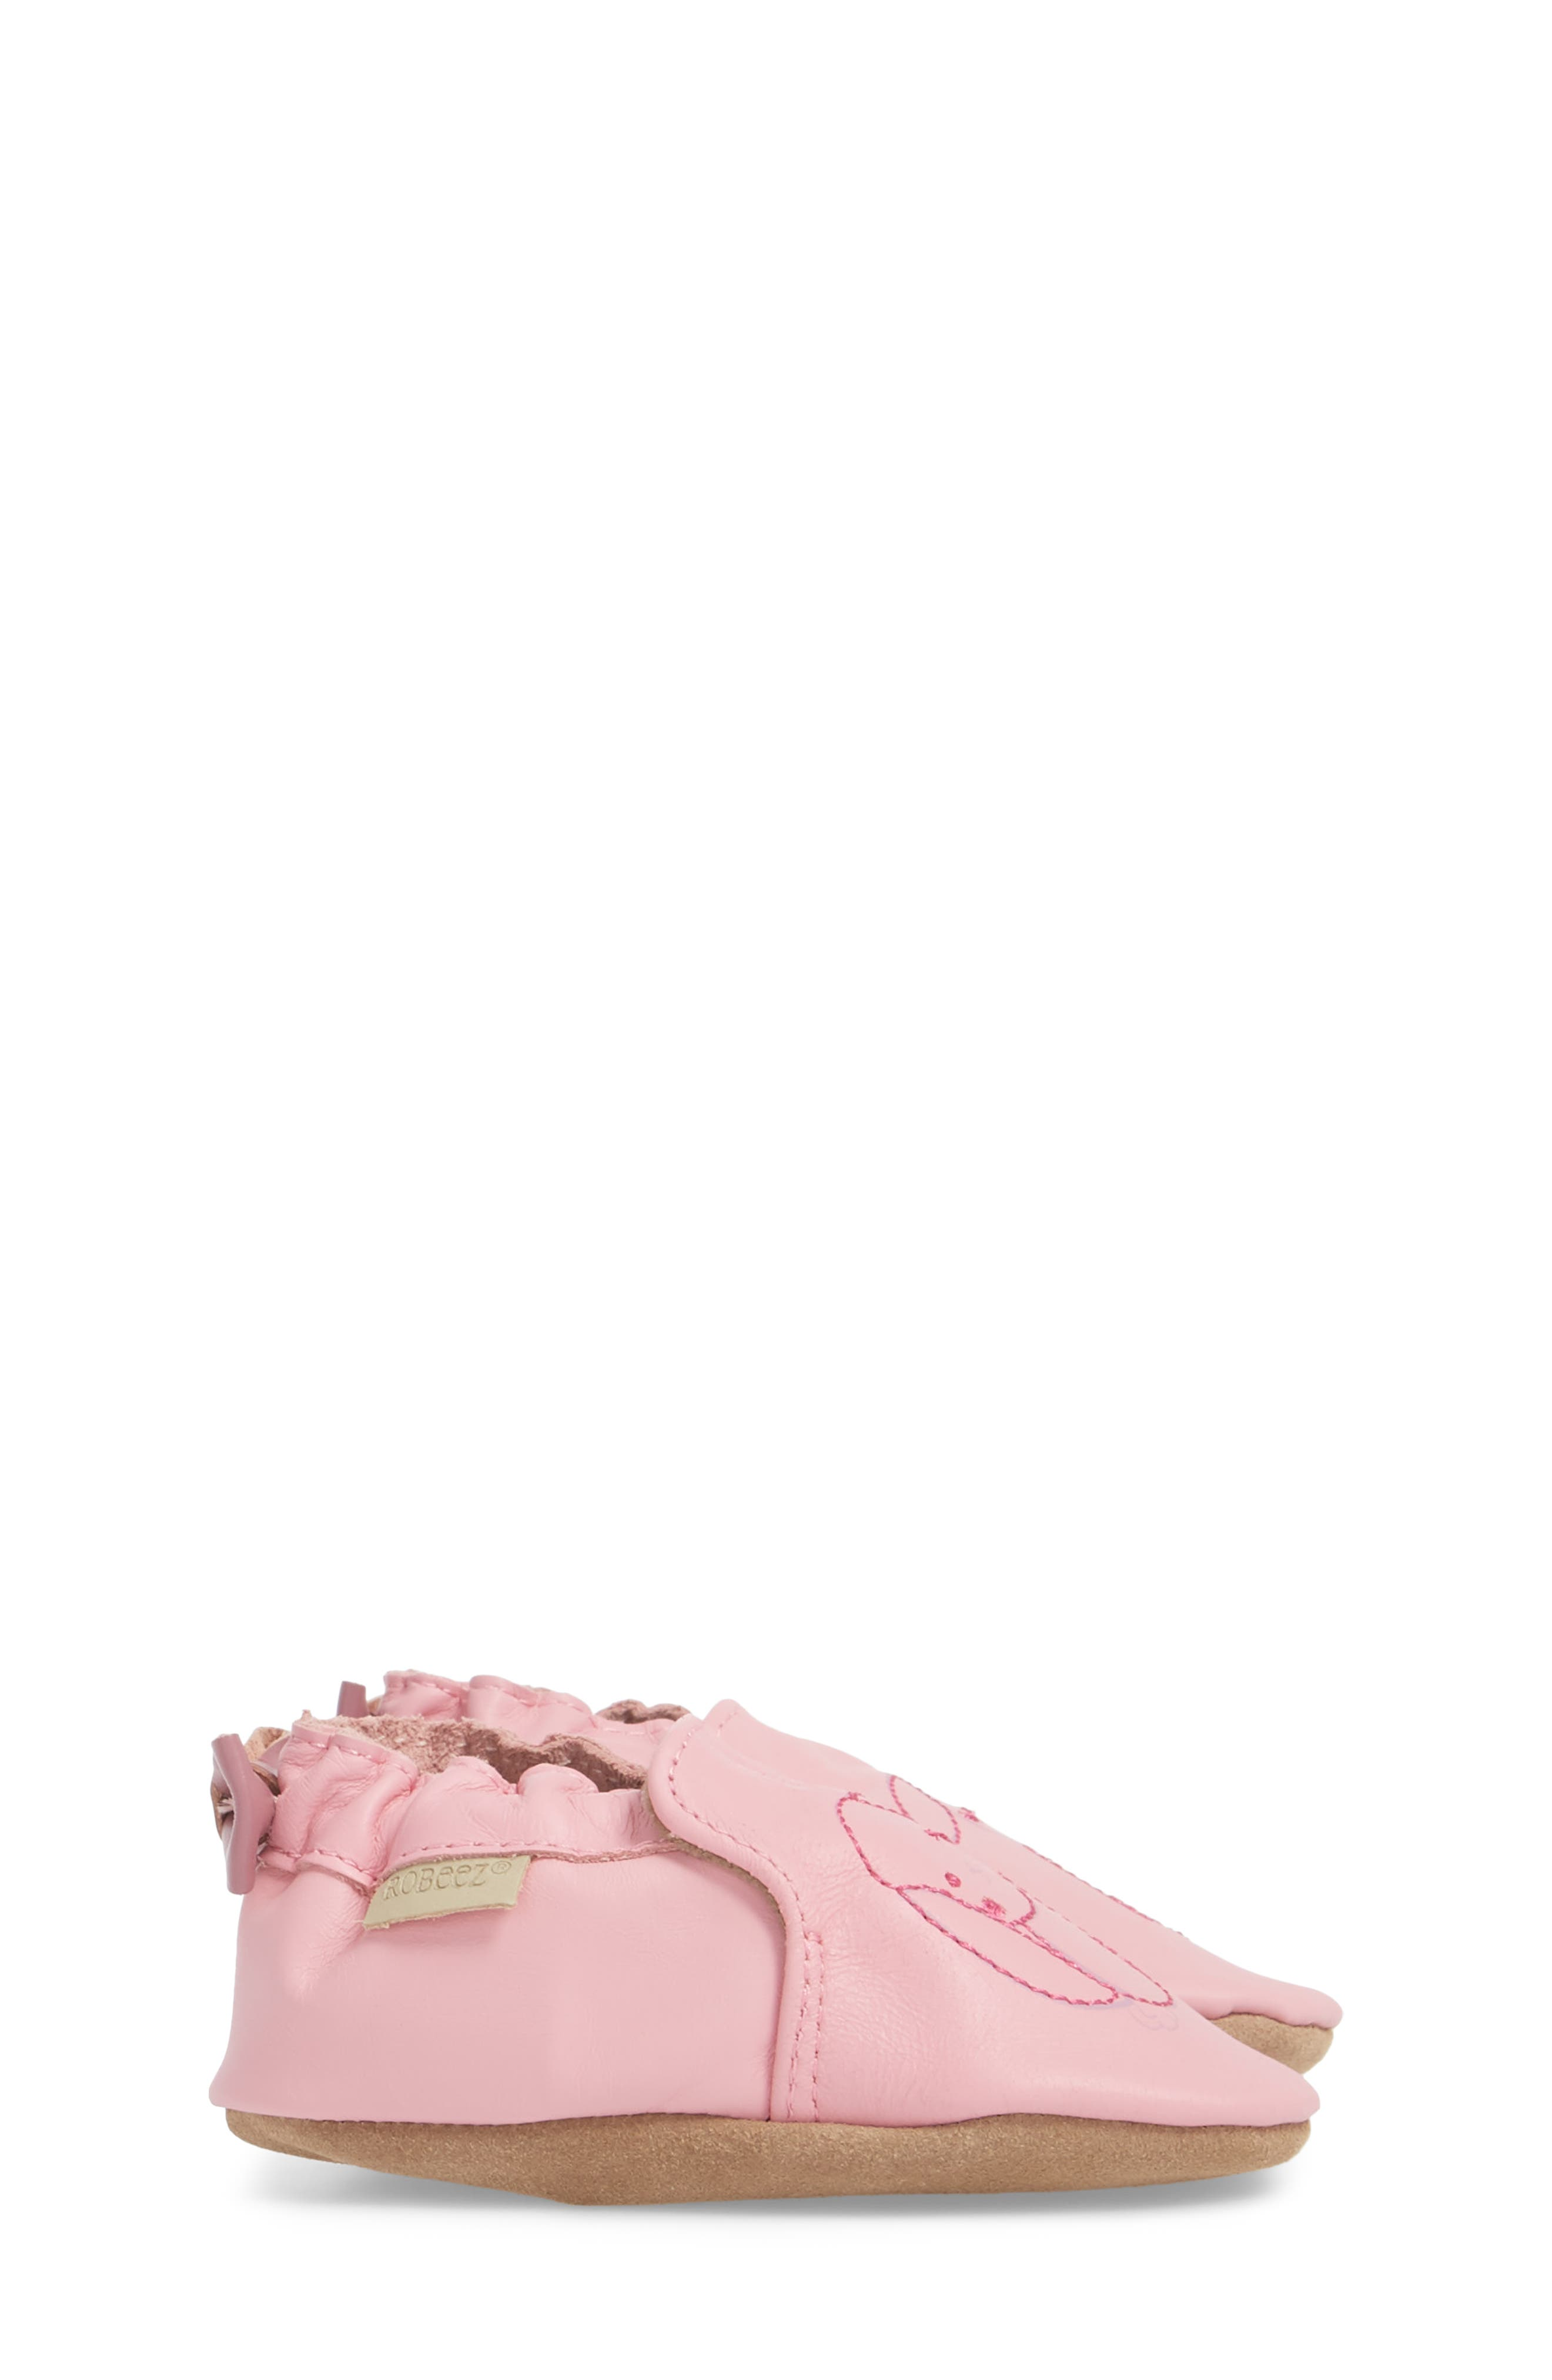 Sweet Bunny Moccasin Crib Shoe,                             Alternate thumbnail 3, color,                             PASTEL PINK